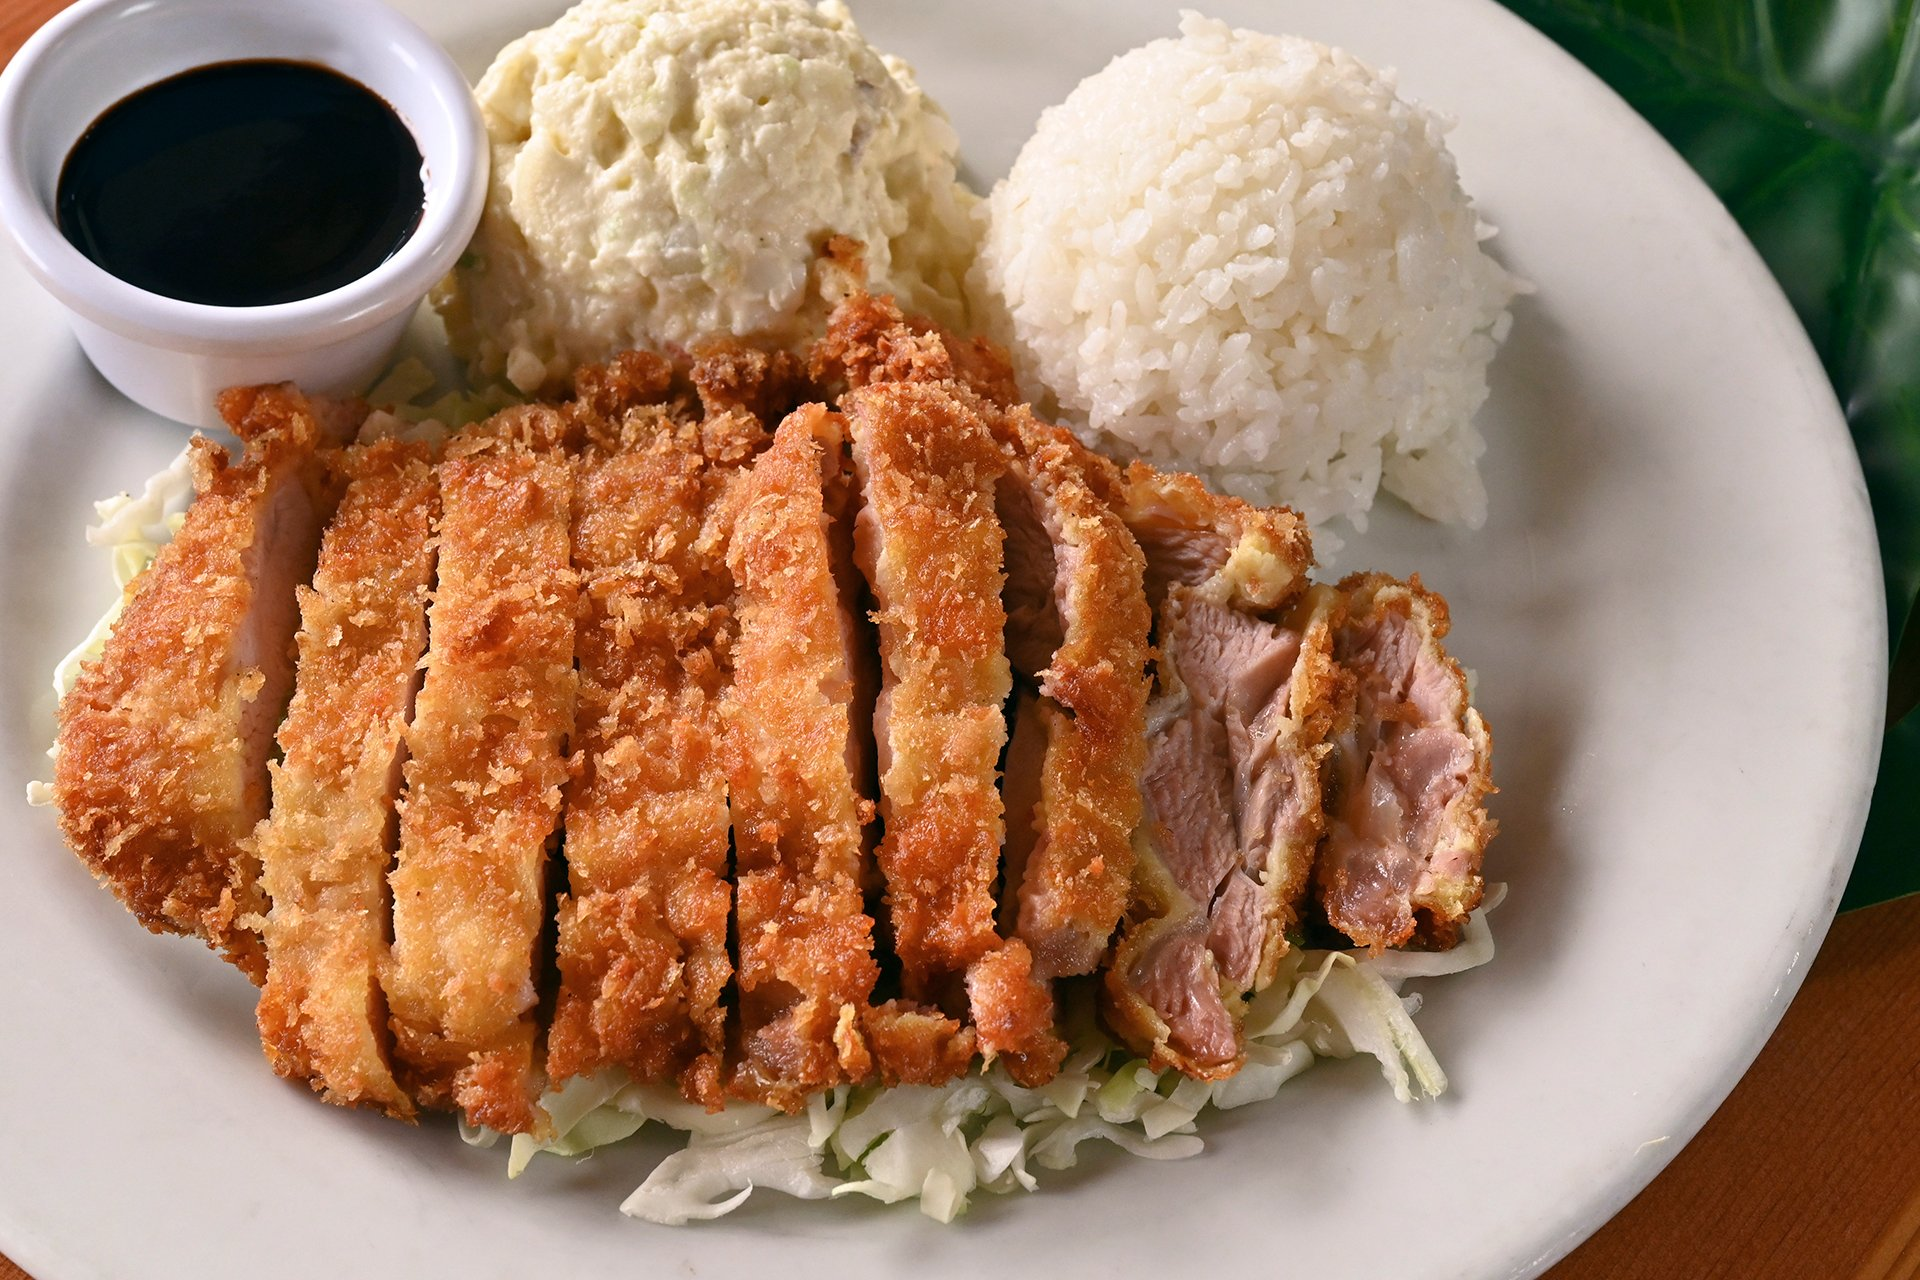 Chicken Katsu Plate Lunch Dinner King S Hawaiian Bakery And Restaurant Hawaiian Restaurant In Ca